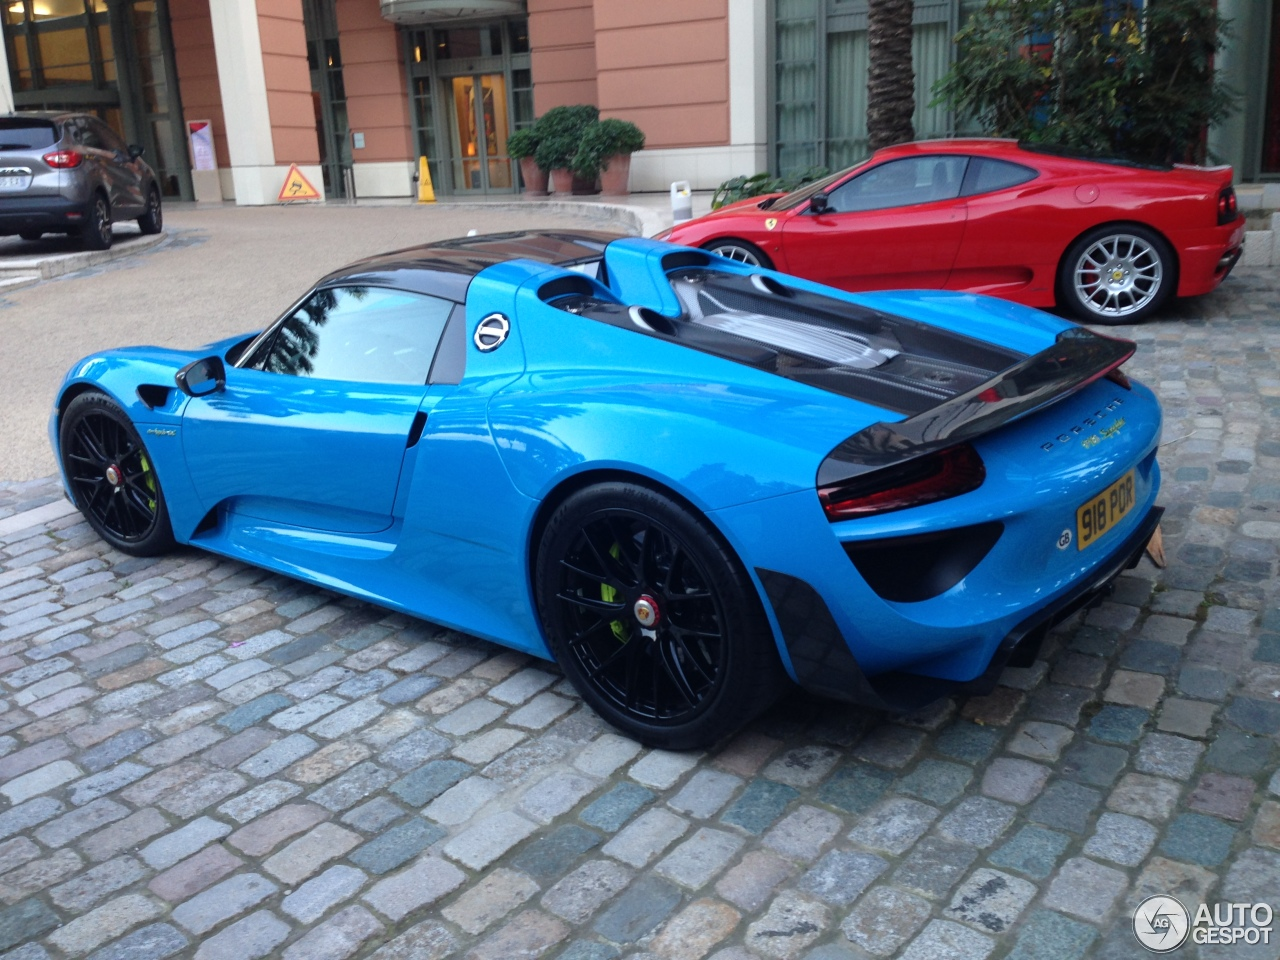 Porsche 918 Spyder Weissach Package 7 June 2015 Autogespot